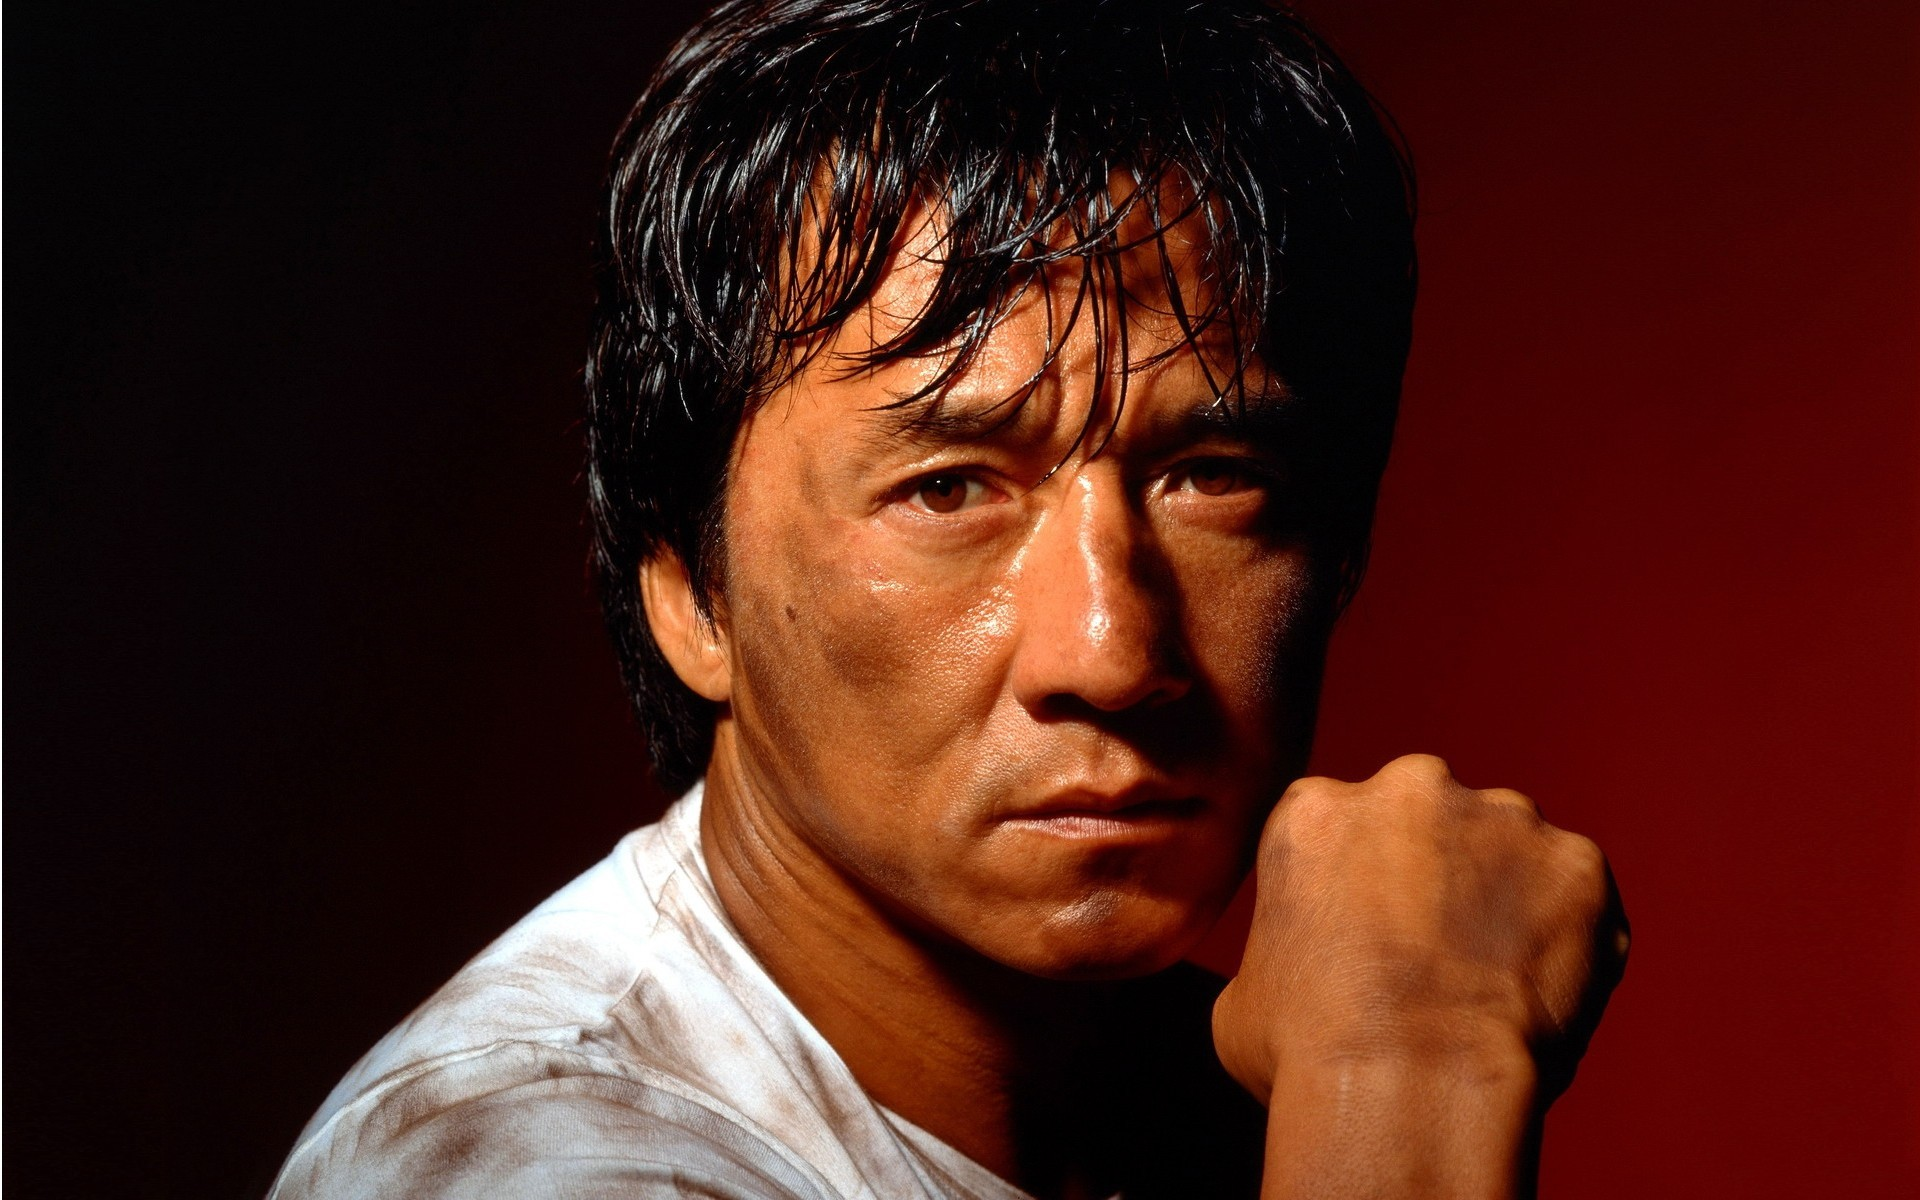 Men asians Jackie Chan HD Wallpaper